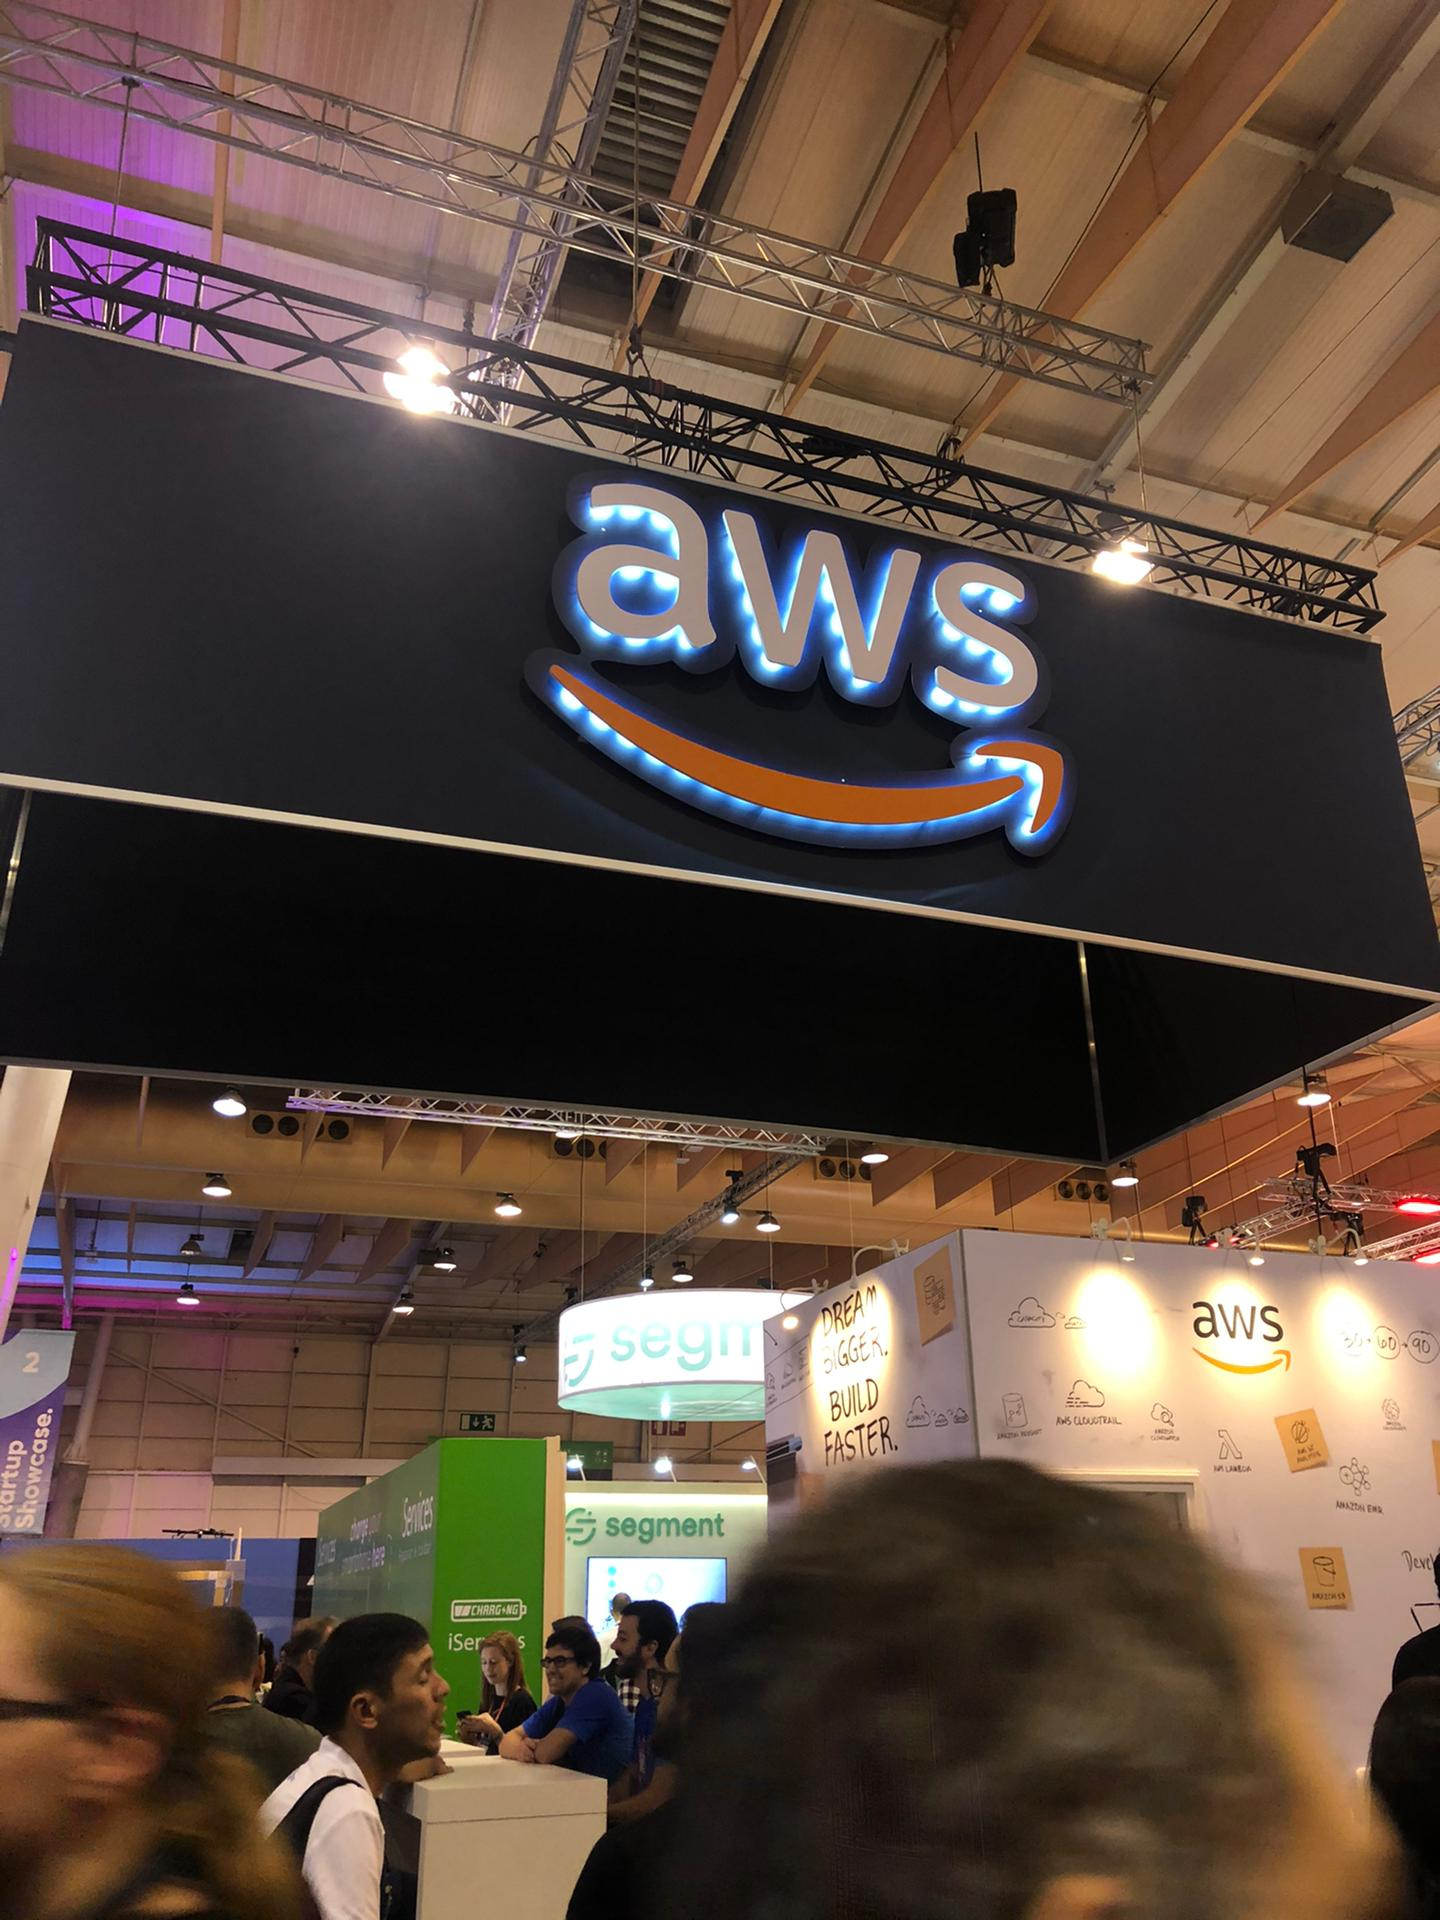 Ilustrating that Cloud Infrastructure got a lot of attention this year, in particular with AWS standing out. Google had a lesser presence this year.